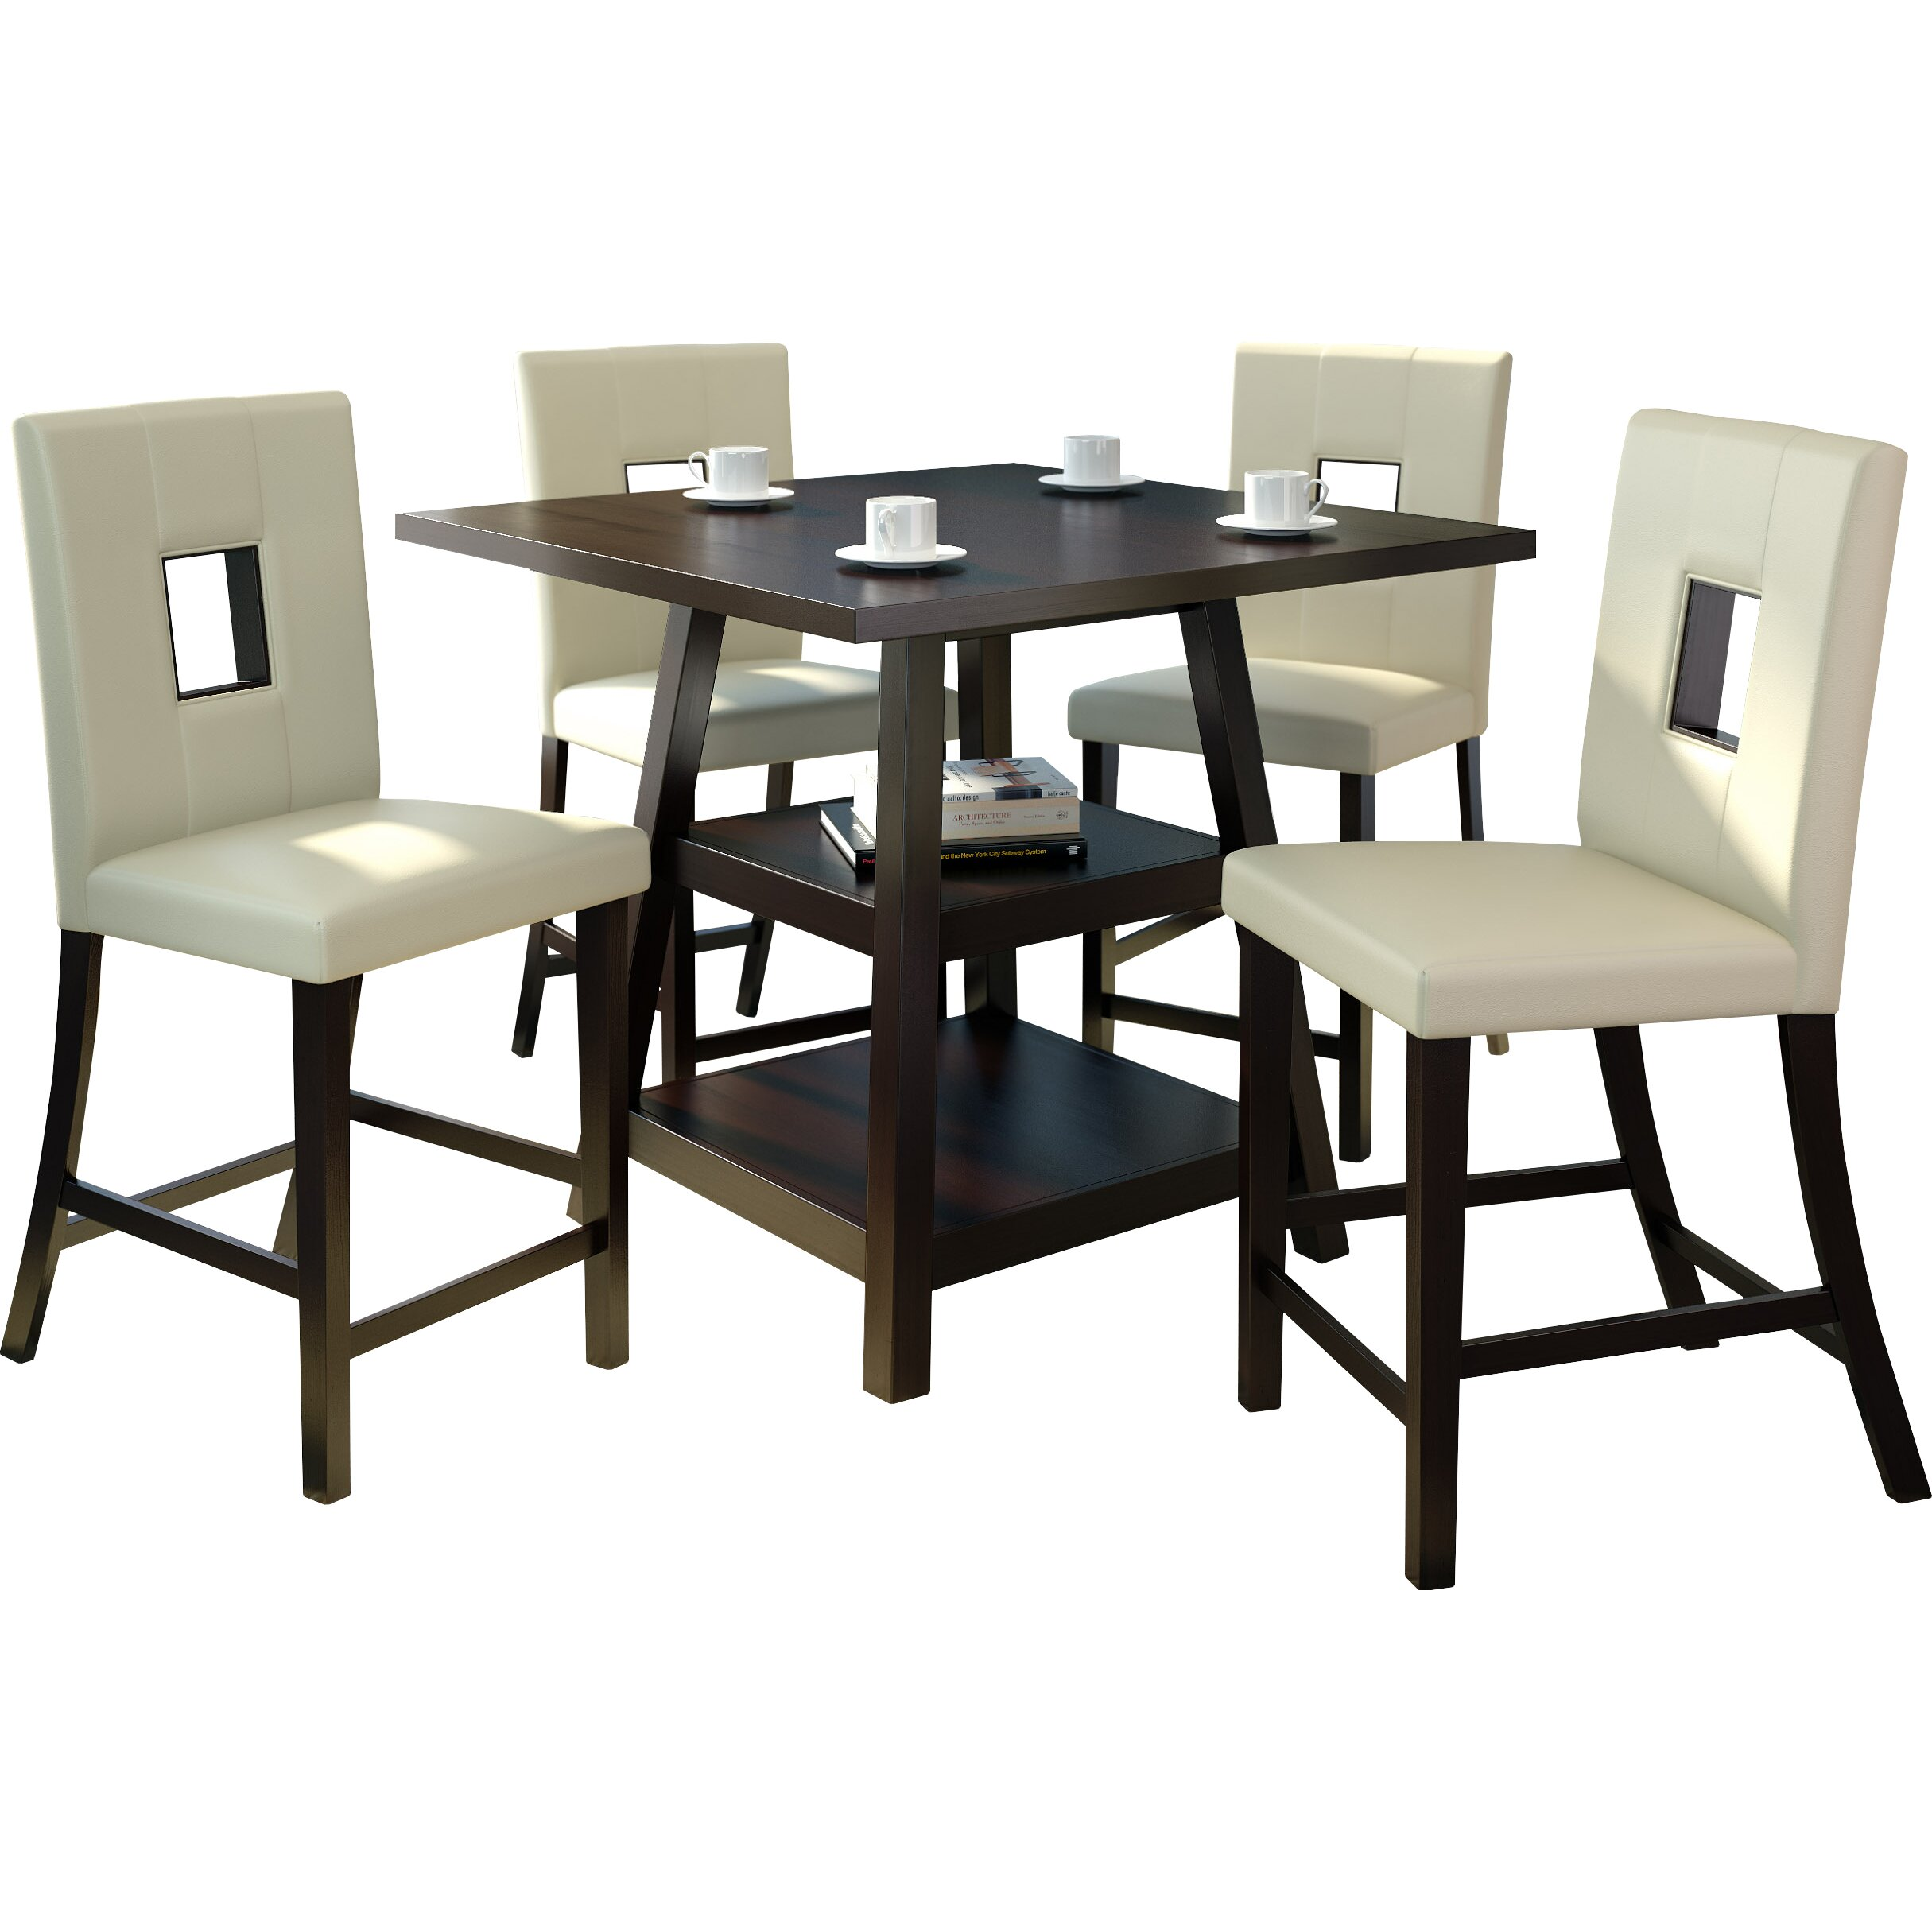 Counter Height Dining Sets 5 Piece : ... Studio Burgess 5 Piece Counter Height Dining Set & Reviews Wayfair